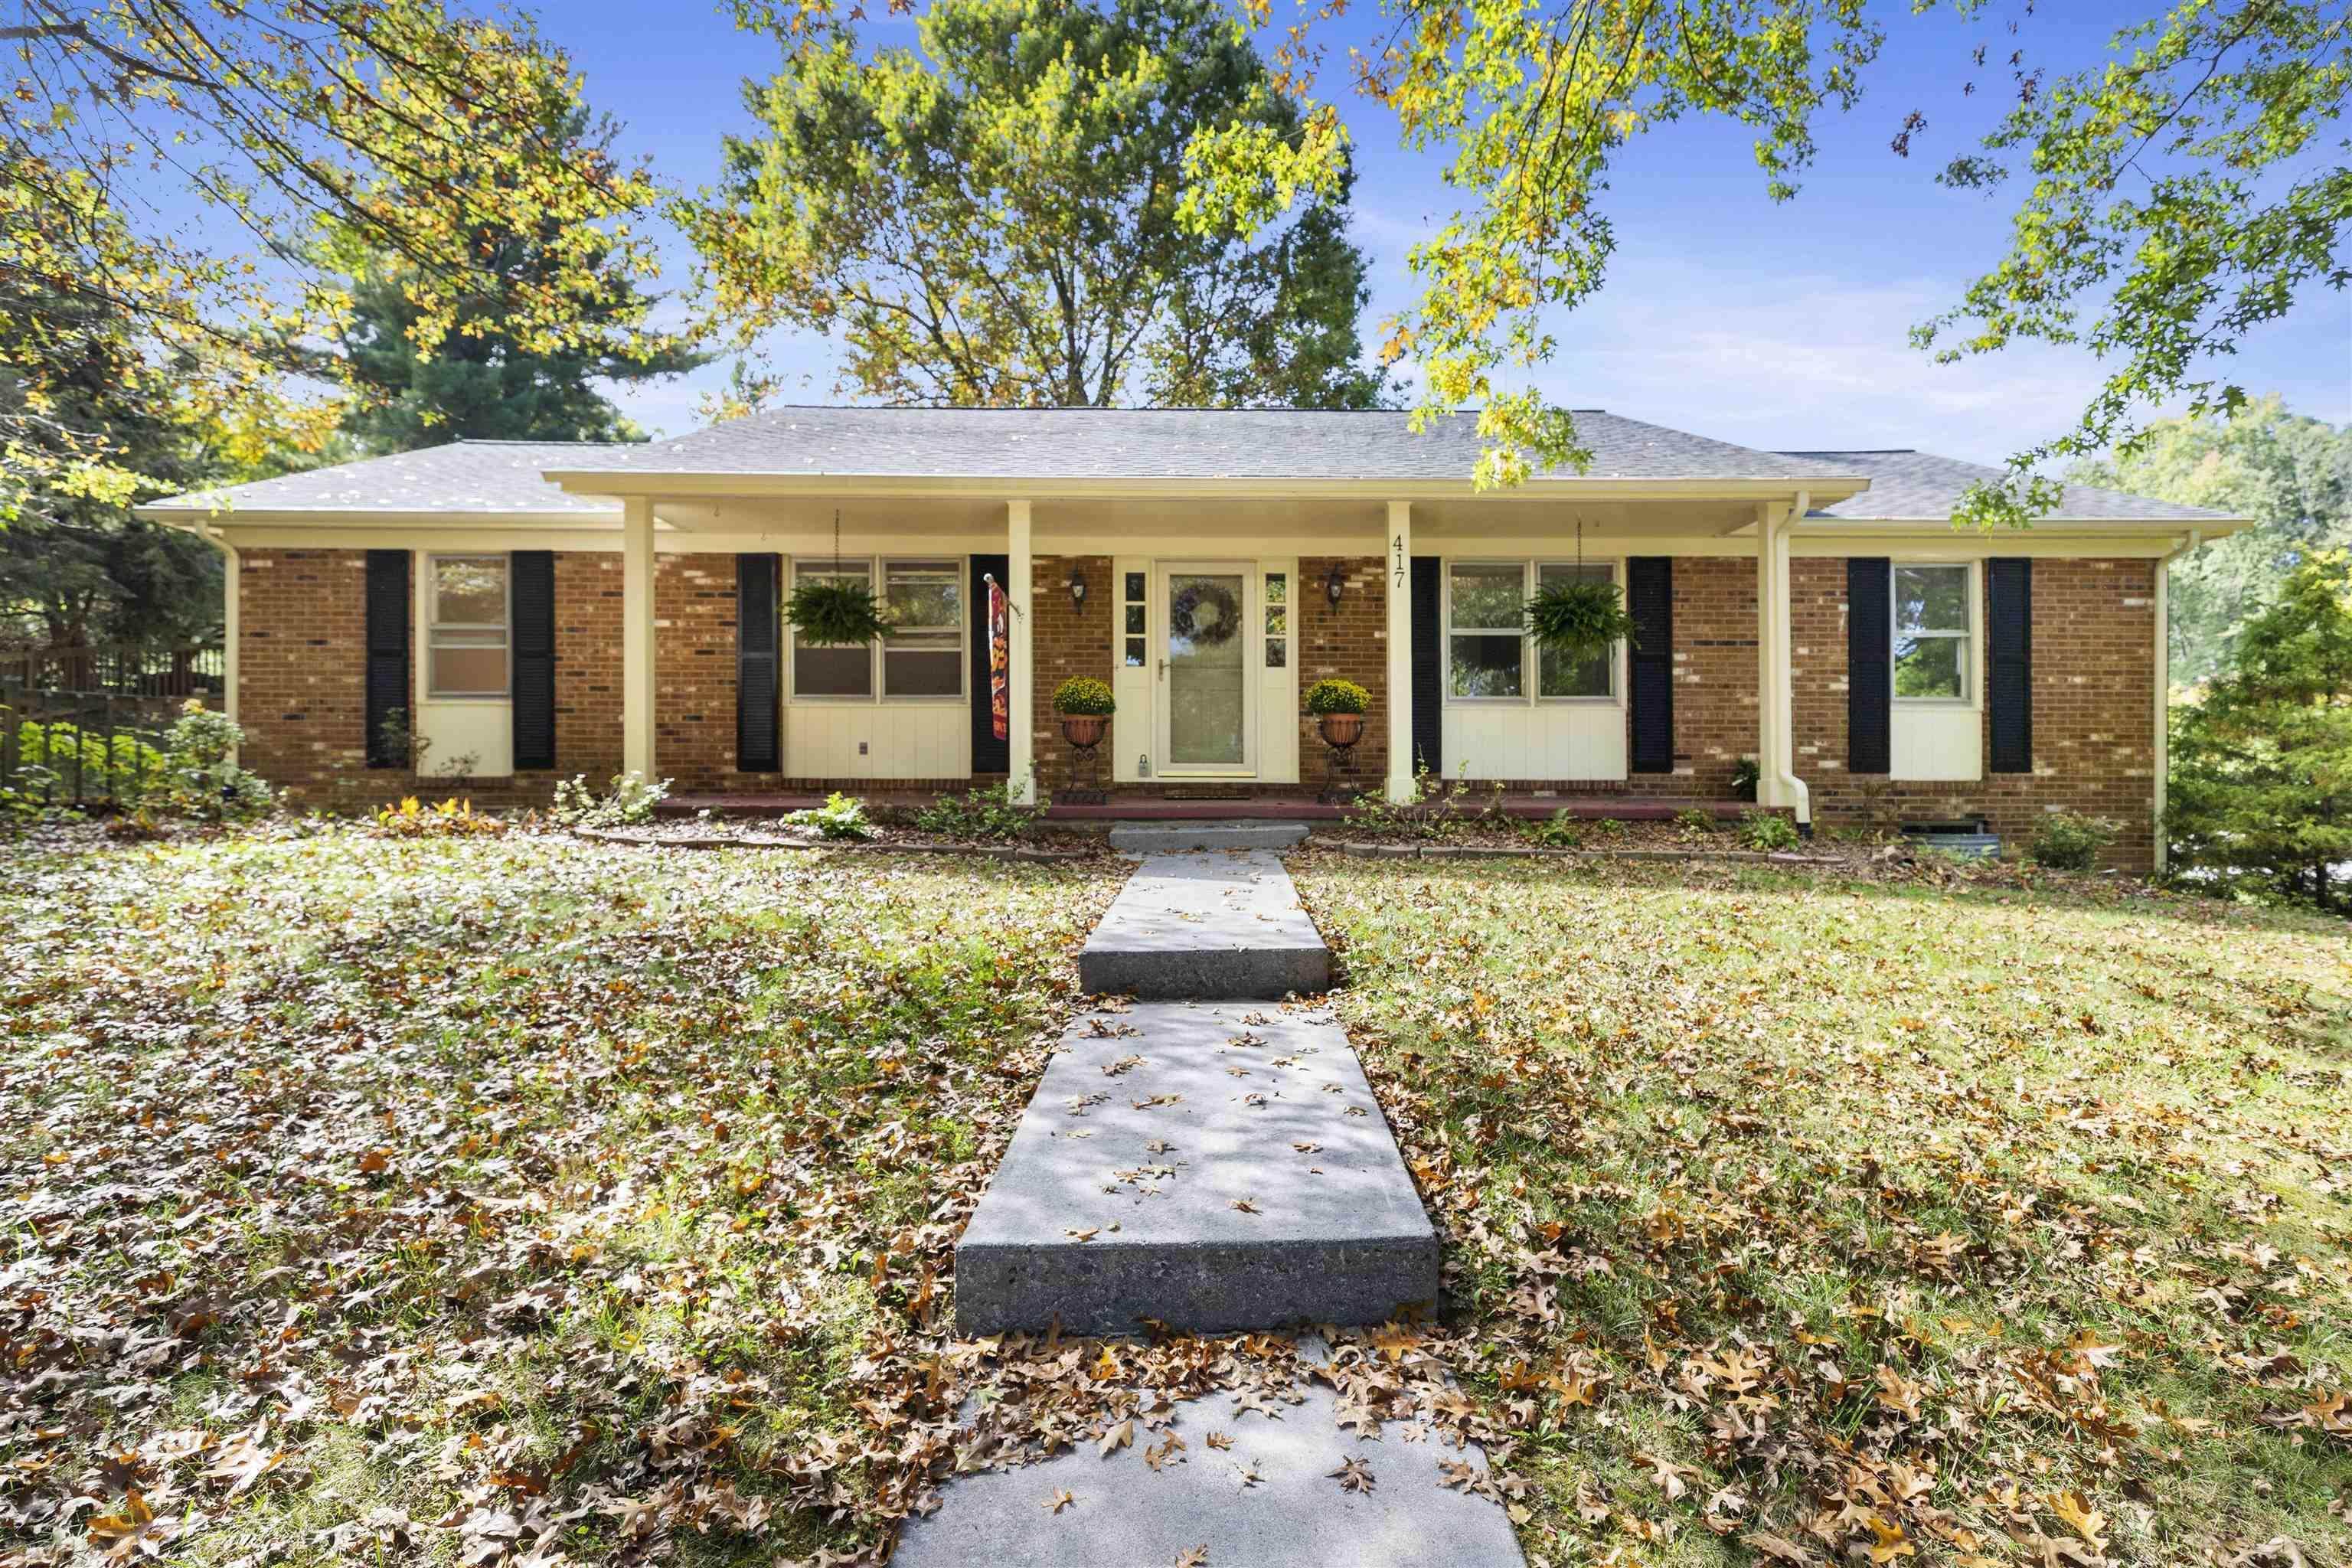 Well-maintained brick ranch home in established, beautiful Blacksburg neighborhood with mature trees. The inviting covered front porch is perfect for porch sitting. This home also has hardscaping that includes paver driveway, walls and walkway which add additional appeal. Inside, the hardwood floors in main floor living areas are newly refinished, plus  freshly painted main level with renovated full baths. The main level family room with brick fireplace opens to the deck, leading to fenced yard with storage shed. Basement has second family room, also with fireplace, and office, half bath, laundry room and storage room.  Oversized double garage includes workshop area with workbench and heater.